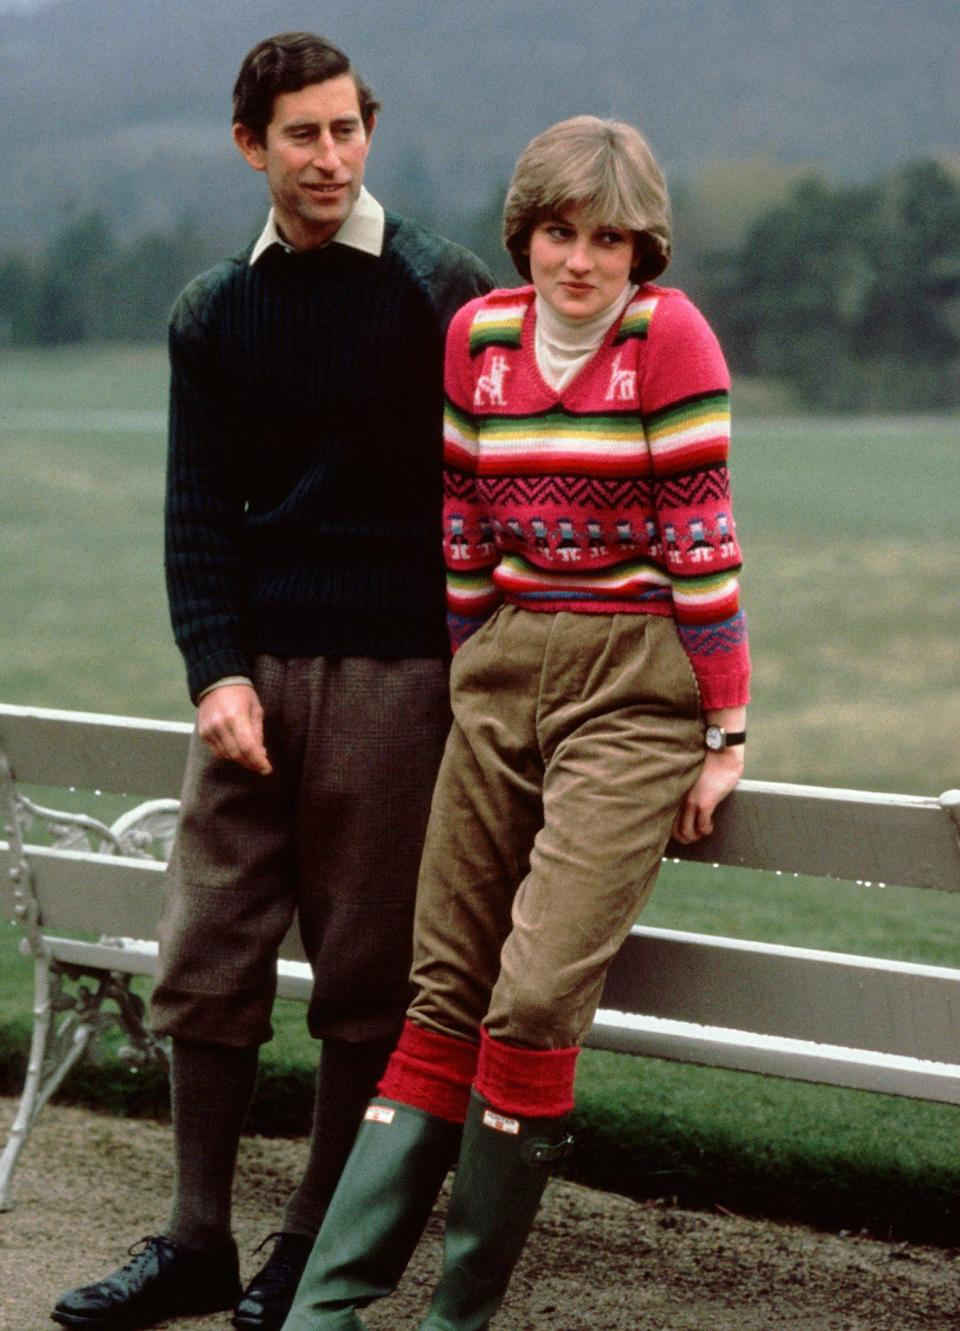 <p>Ahead of their royal wedding, Princess Diana posed for a photo with Prince Charles at Balmoral wearing a pink patterned pullover with trousers and boots.</p>